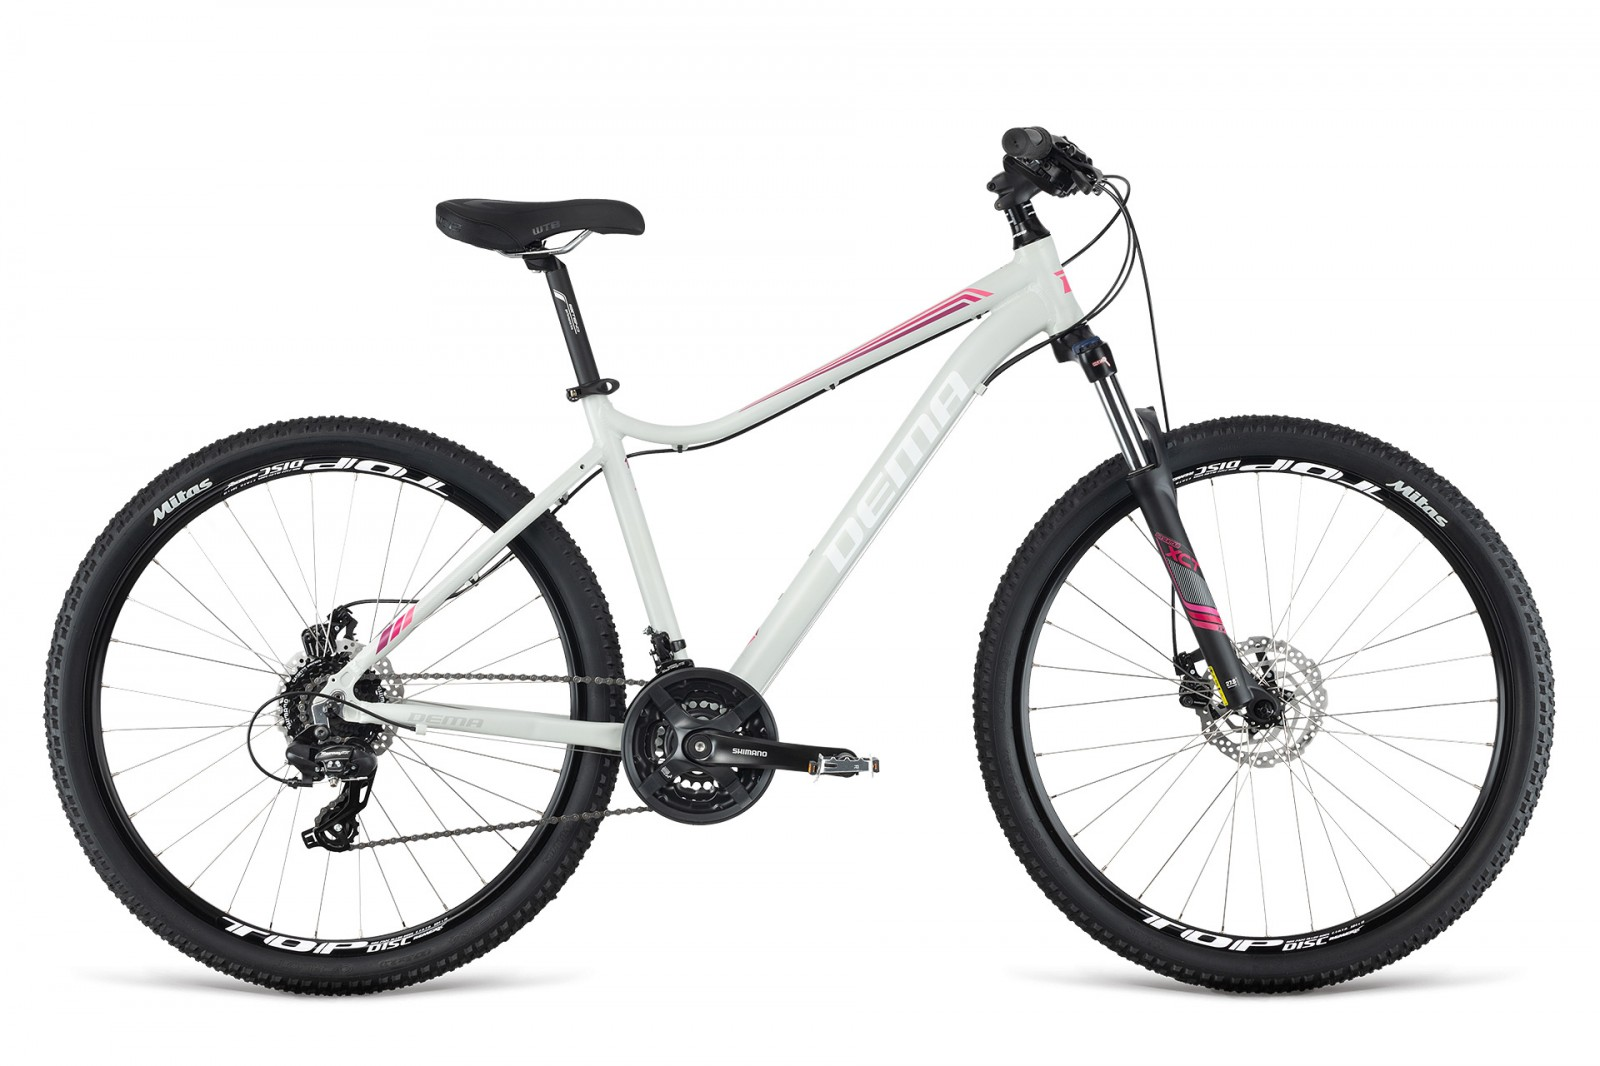 Dema TIGRA 5.0 Lady 2019 light grey/pink 27.5''